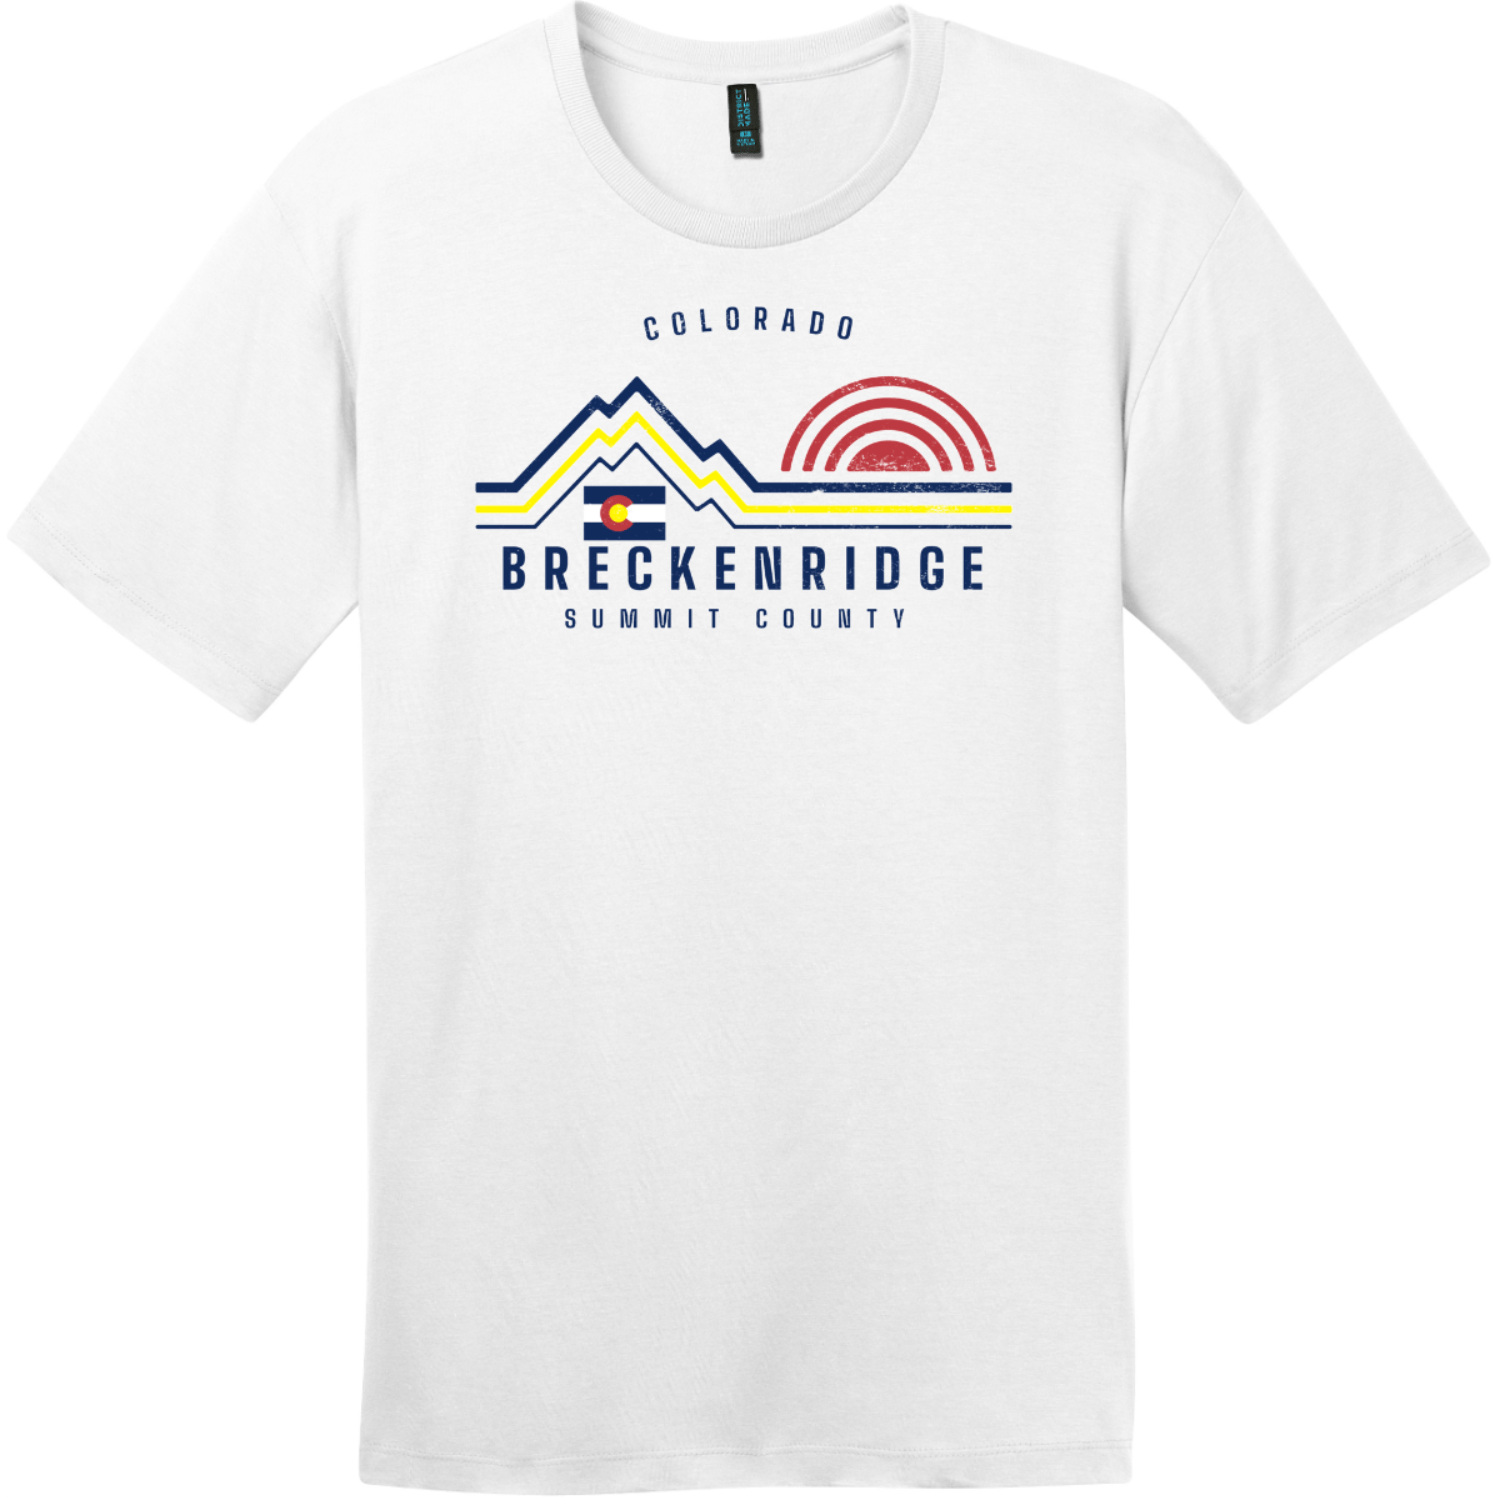 Breckenridge Mountain Summit County T-Shirt Bright White District Perfect Weight Tee DT104